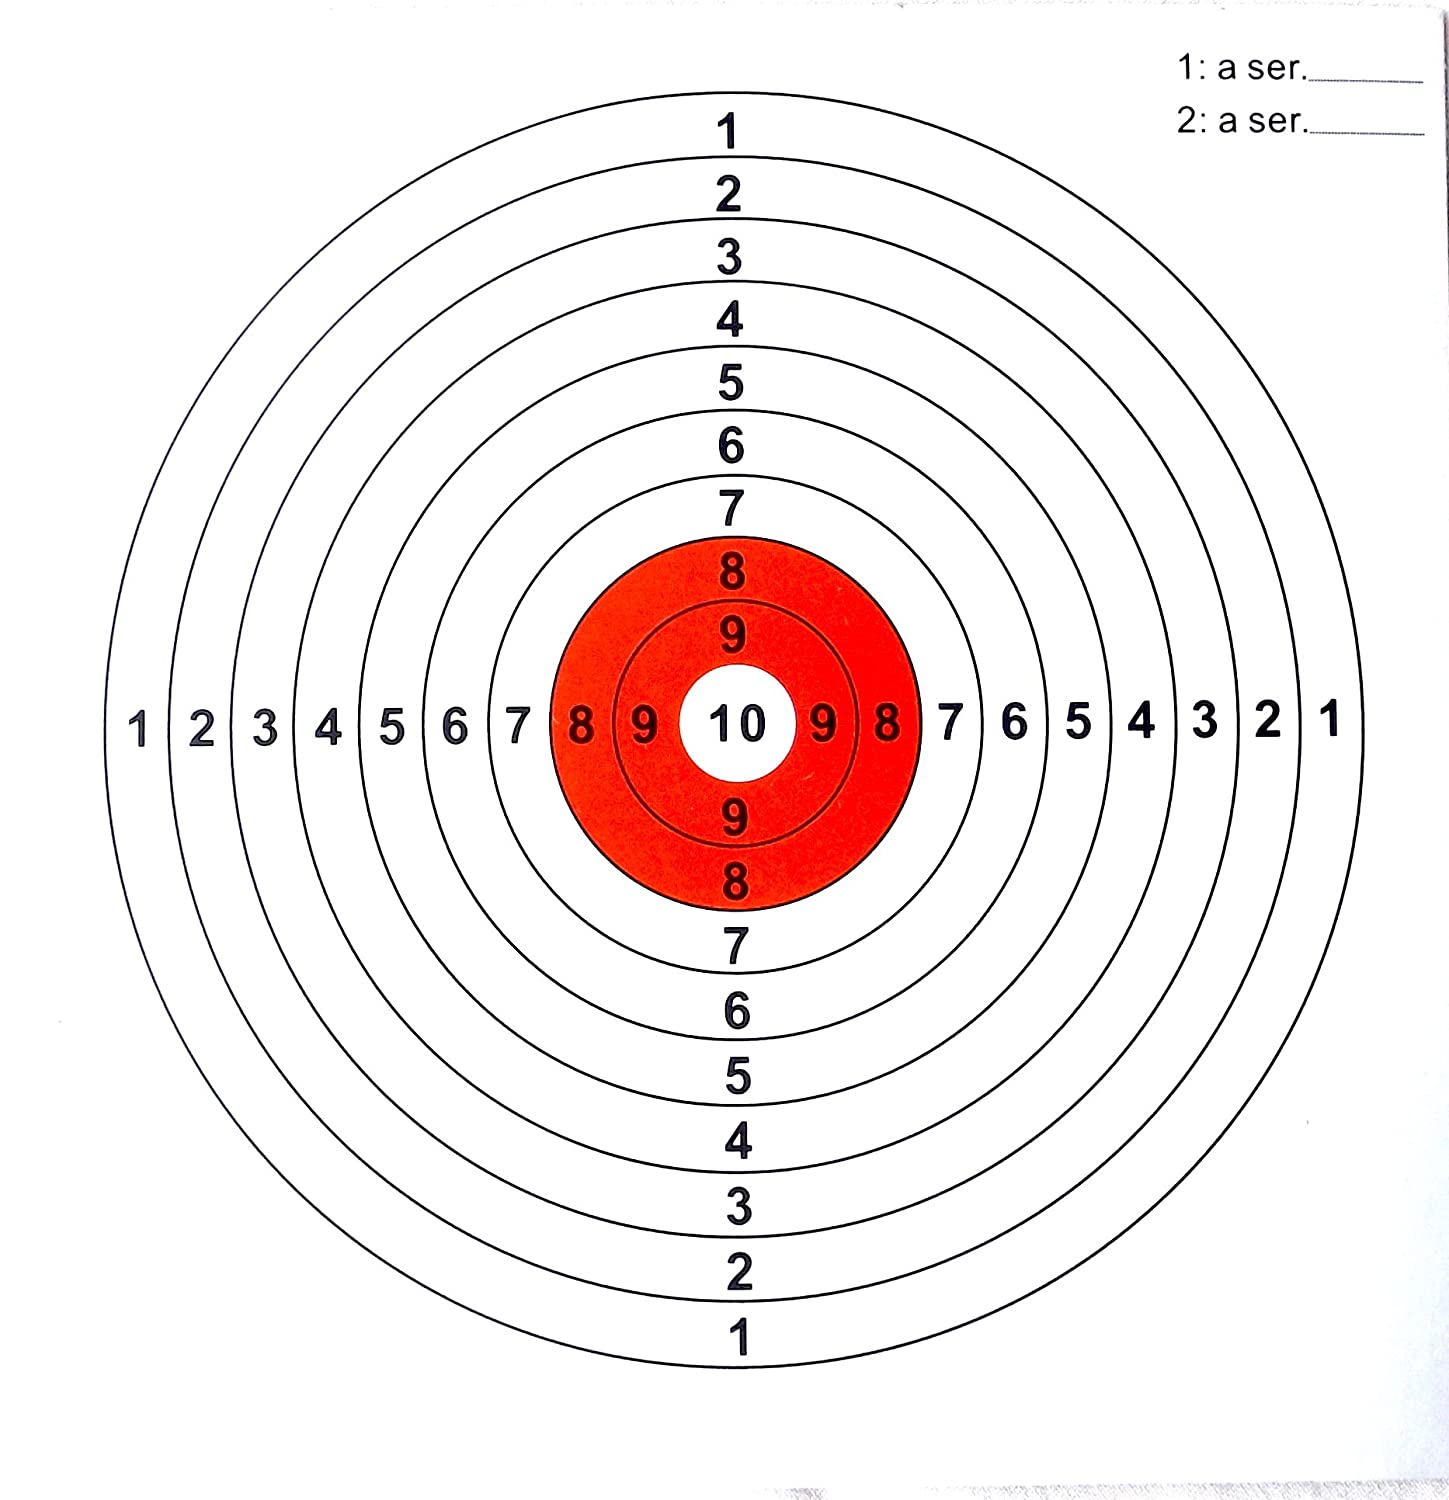 image regarding Turkey Shoot Targets Printable identified as Air Rifle ambitions toward in good shape 5.5 inch (140mm) Pellet Lure 100